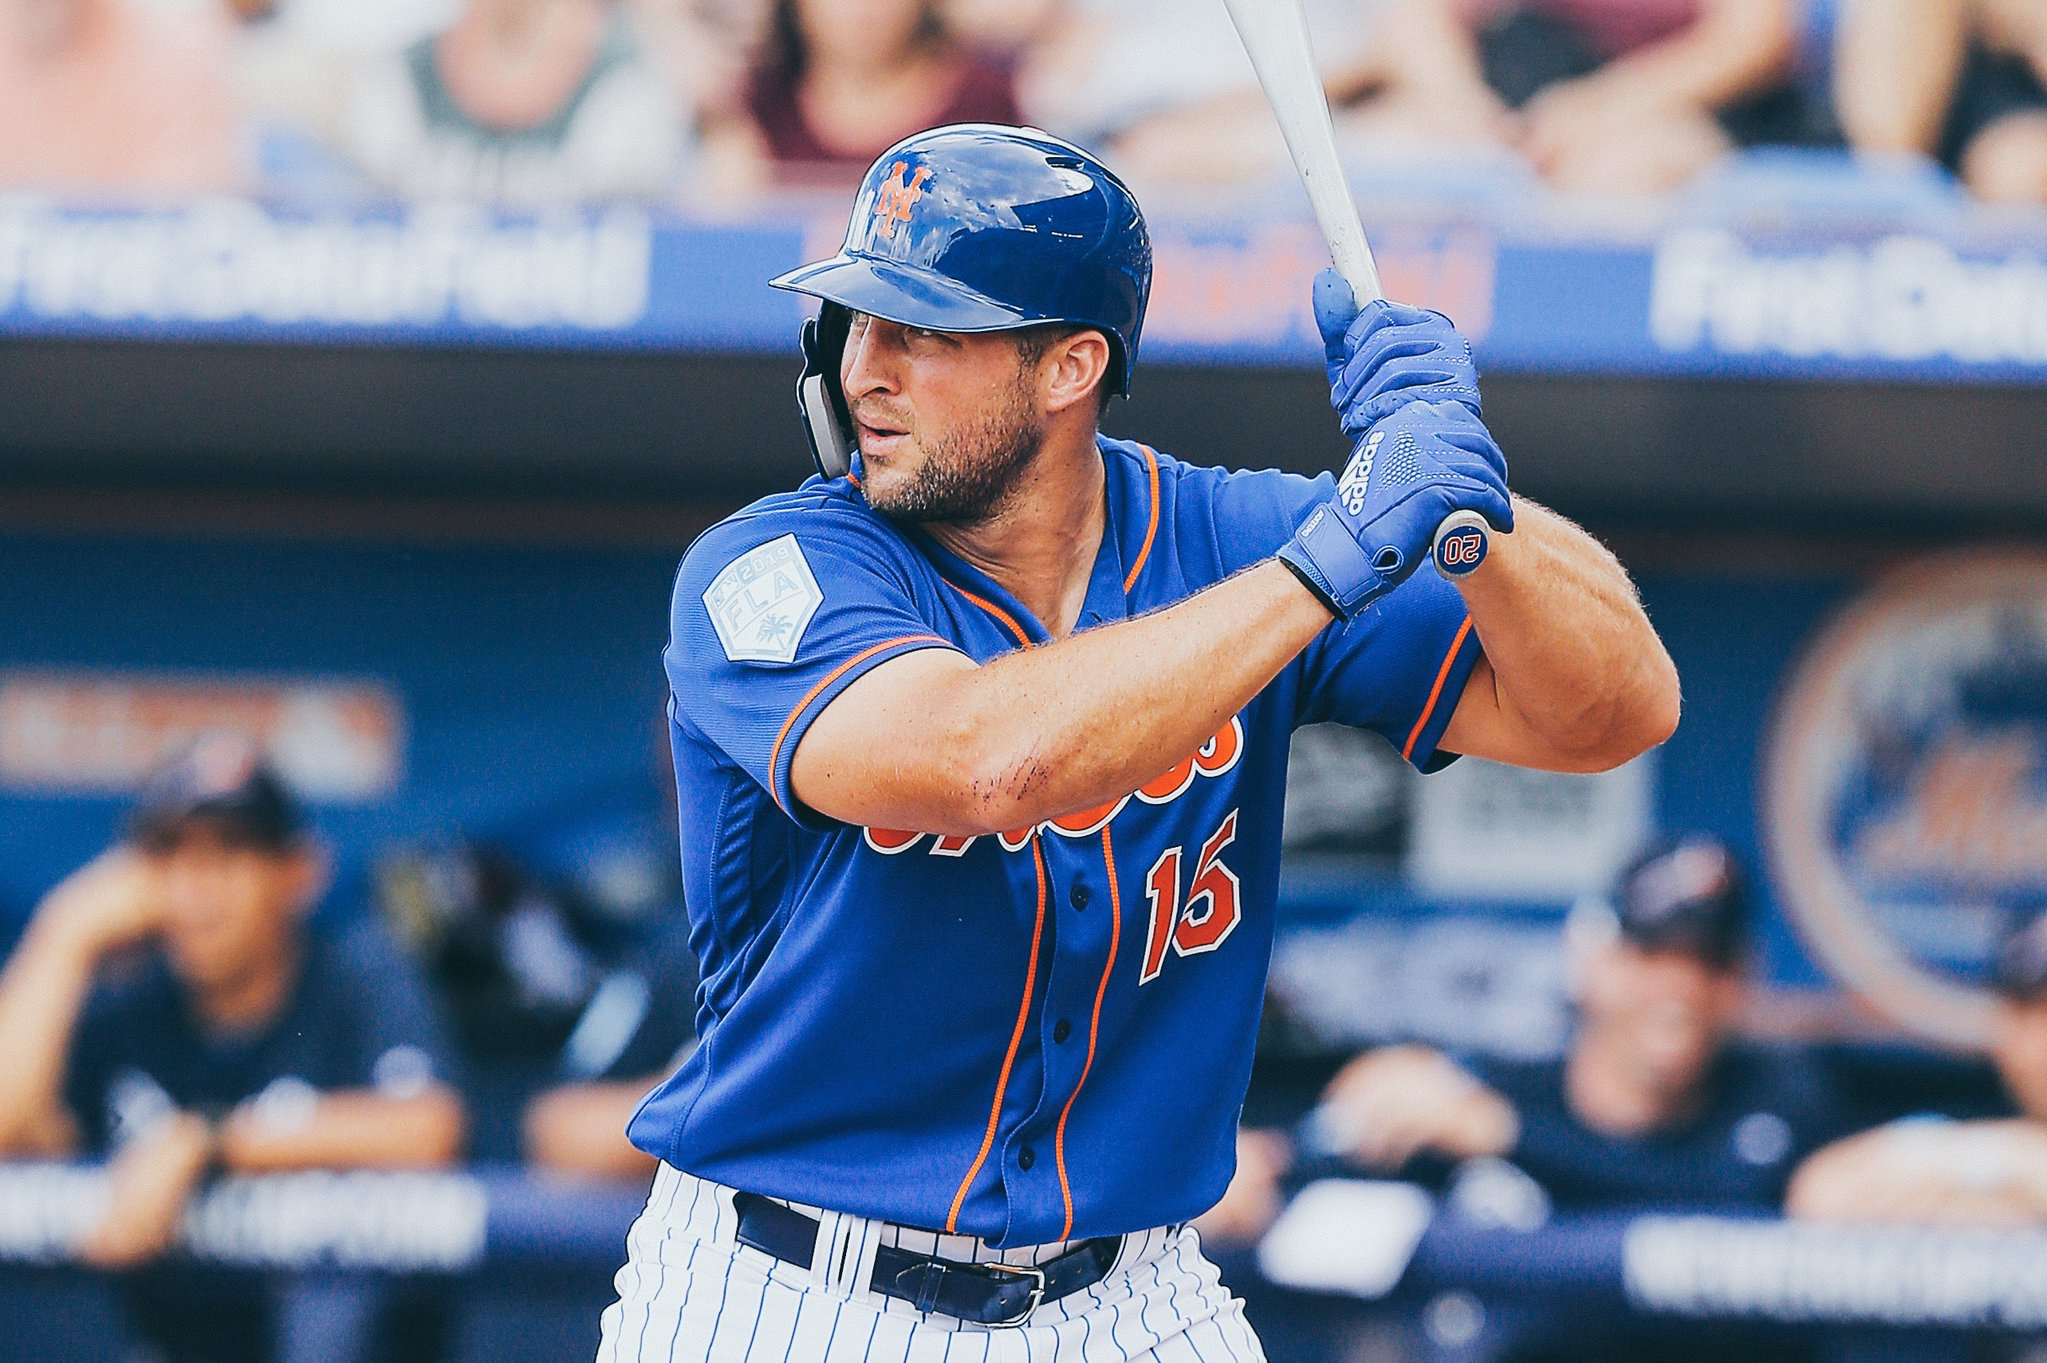 Tim Tebow Will Be The First Ever Player To Have Circumcised His Teammates At The World Baseball Classic This Summer